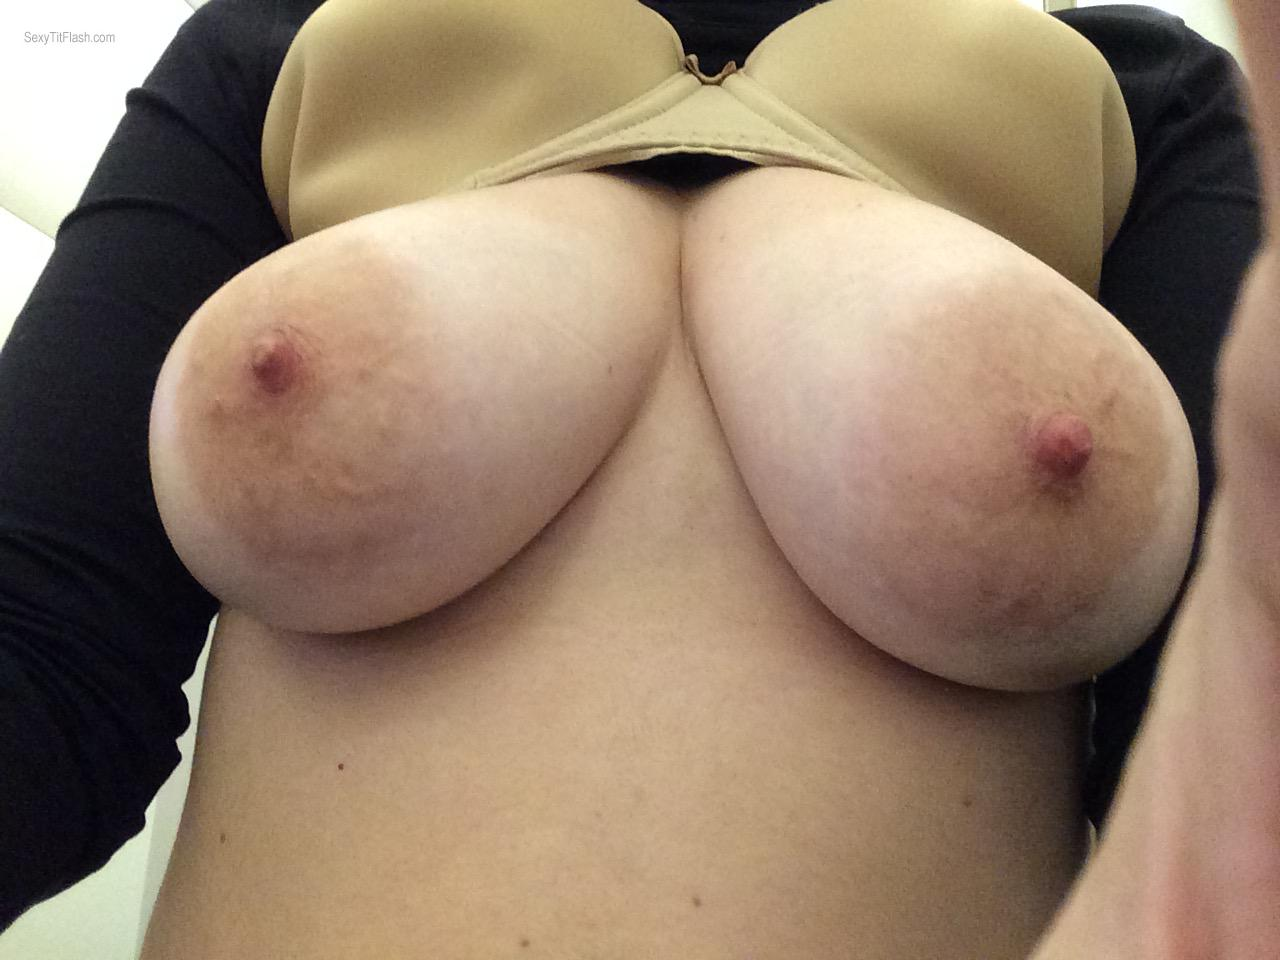 My Big Tits Selfie by Curvaliscious